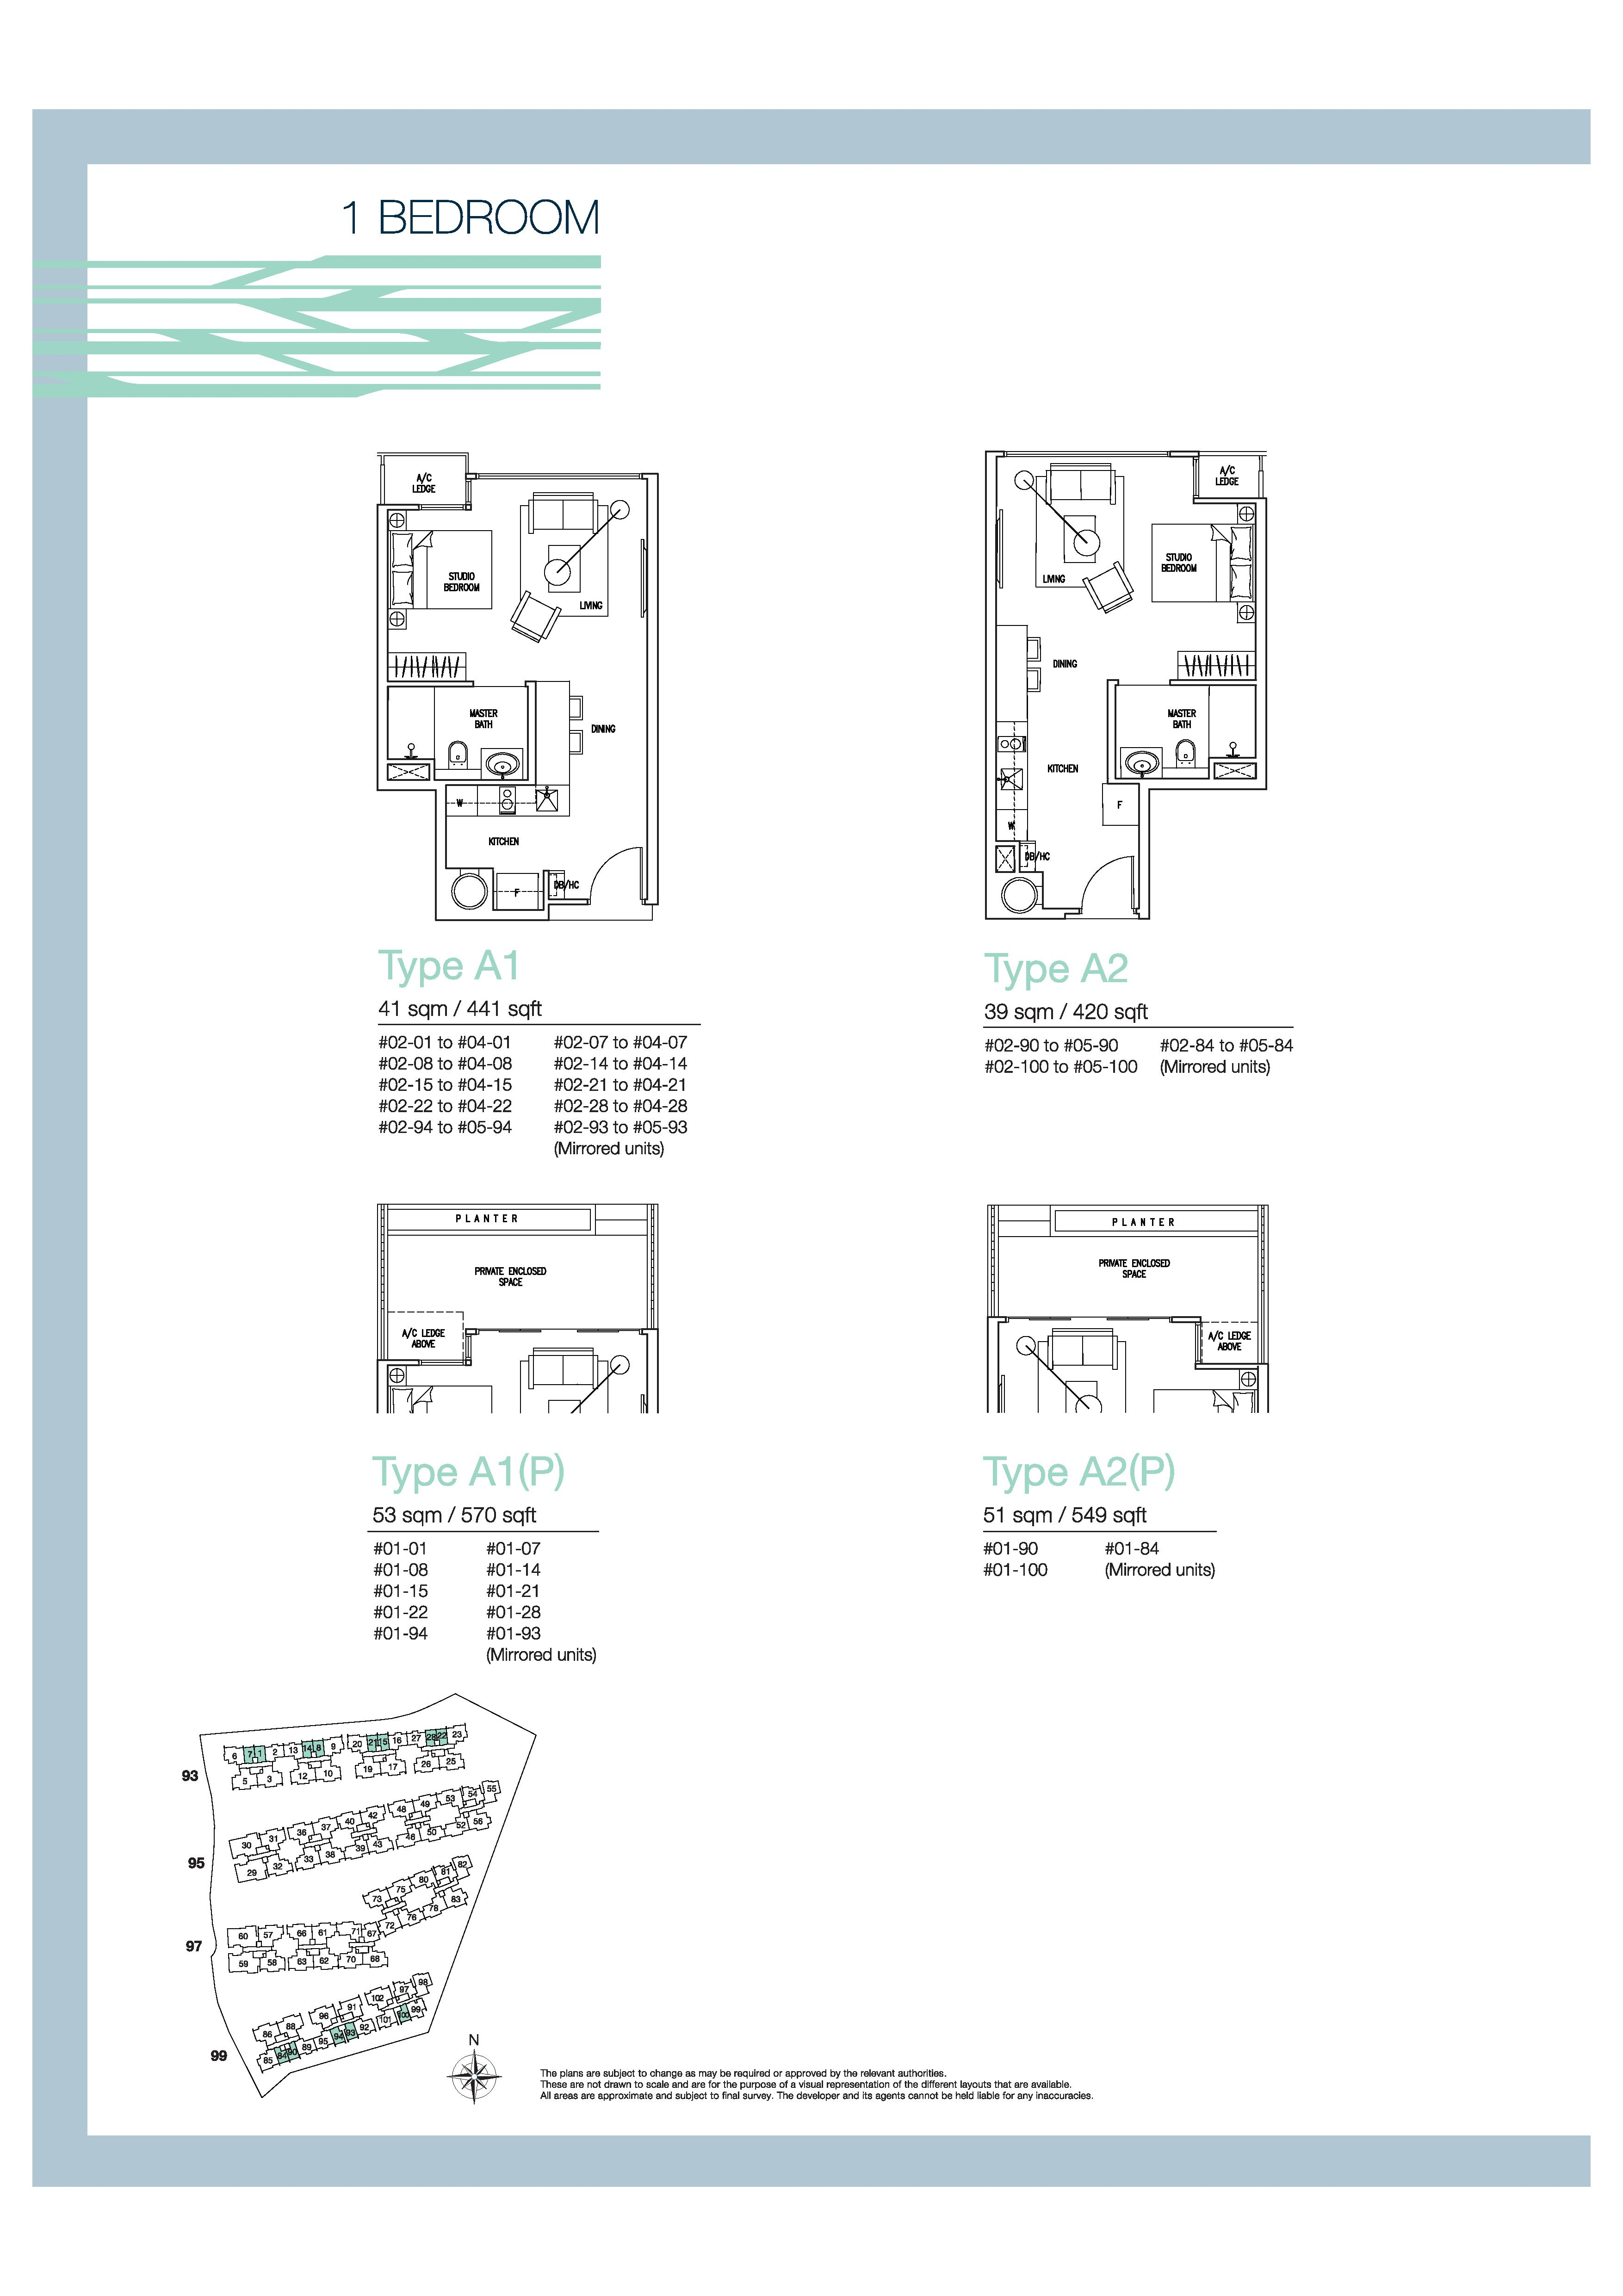 The Nautical 1 Bedroom Floor Plans Type A1, A1(P), A2, A2(P)